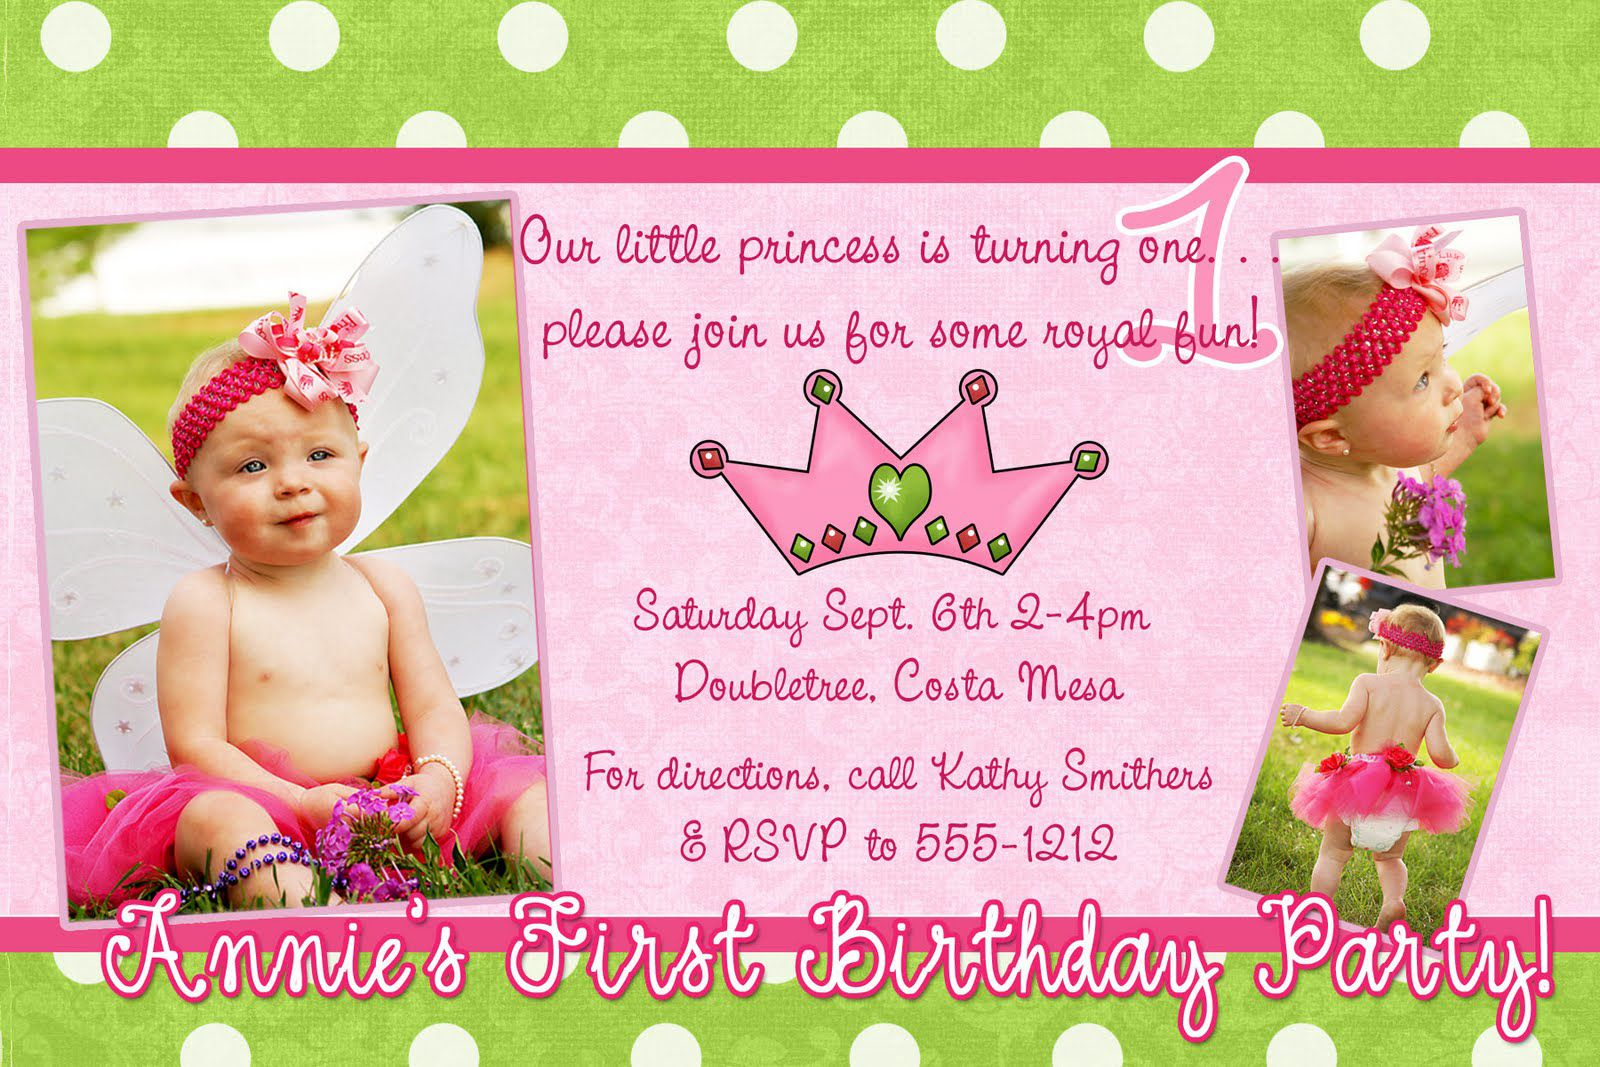 21 kids birthday invitation wording that we can make sample girl birthday invitation wording filmwisefo Image collections